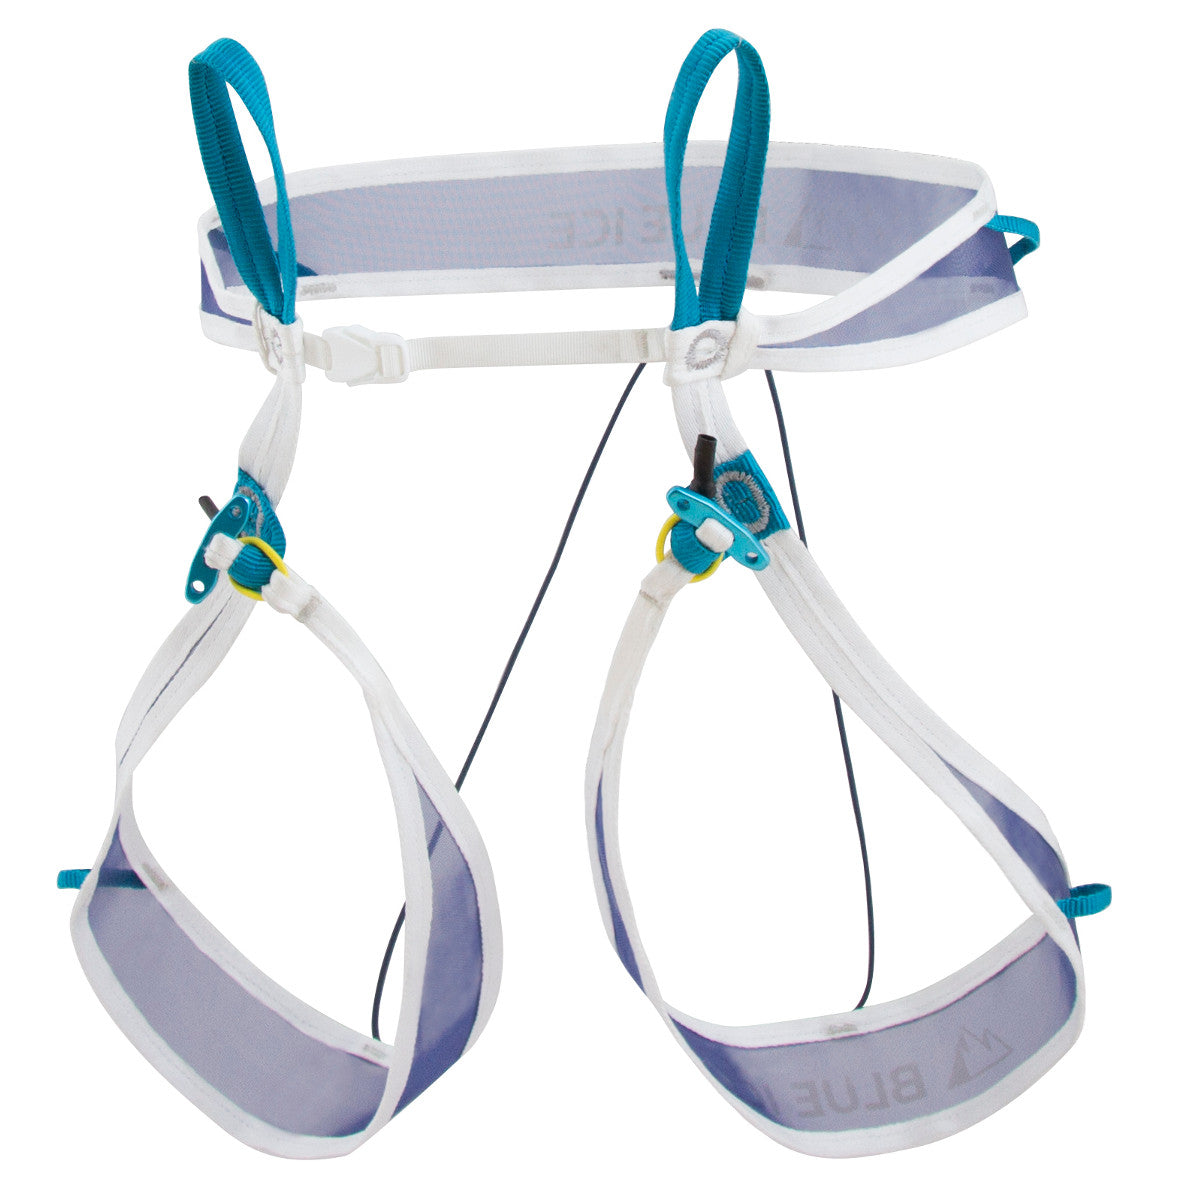 Blue Ice Choucas Light Harness, front/side view shown in white and blue colours